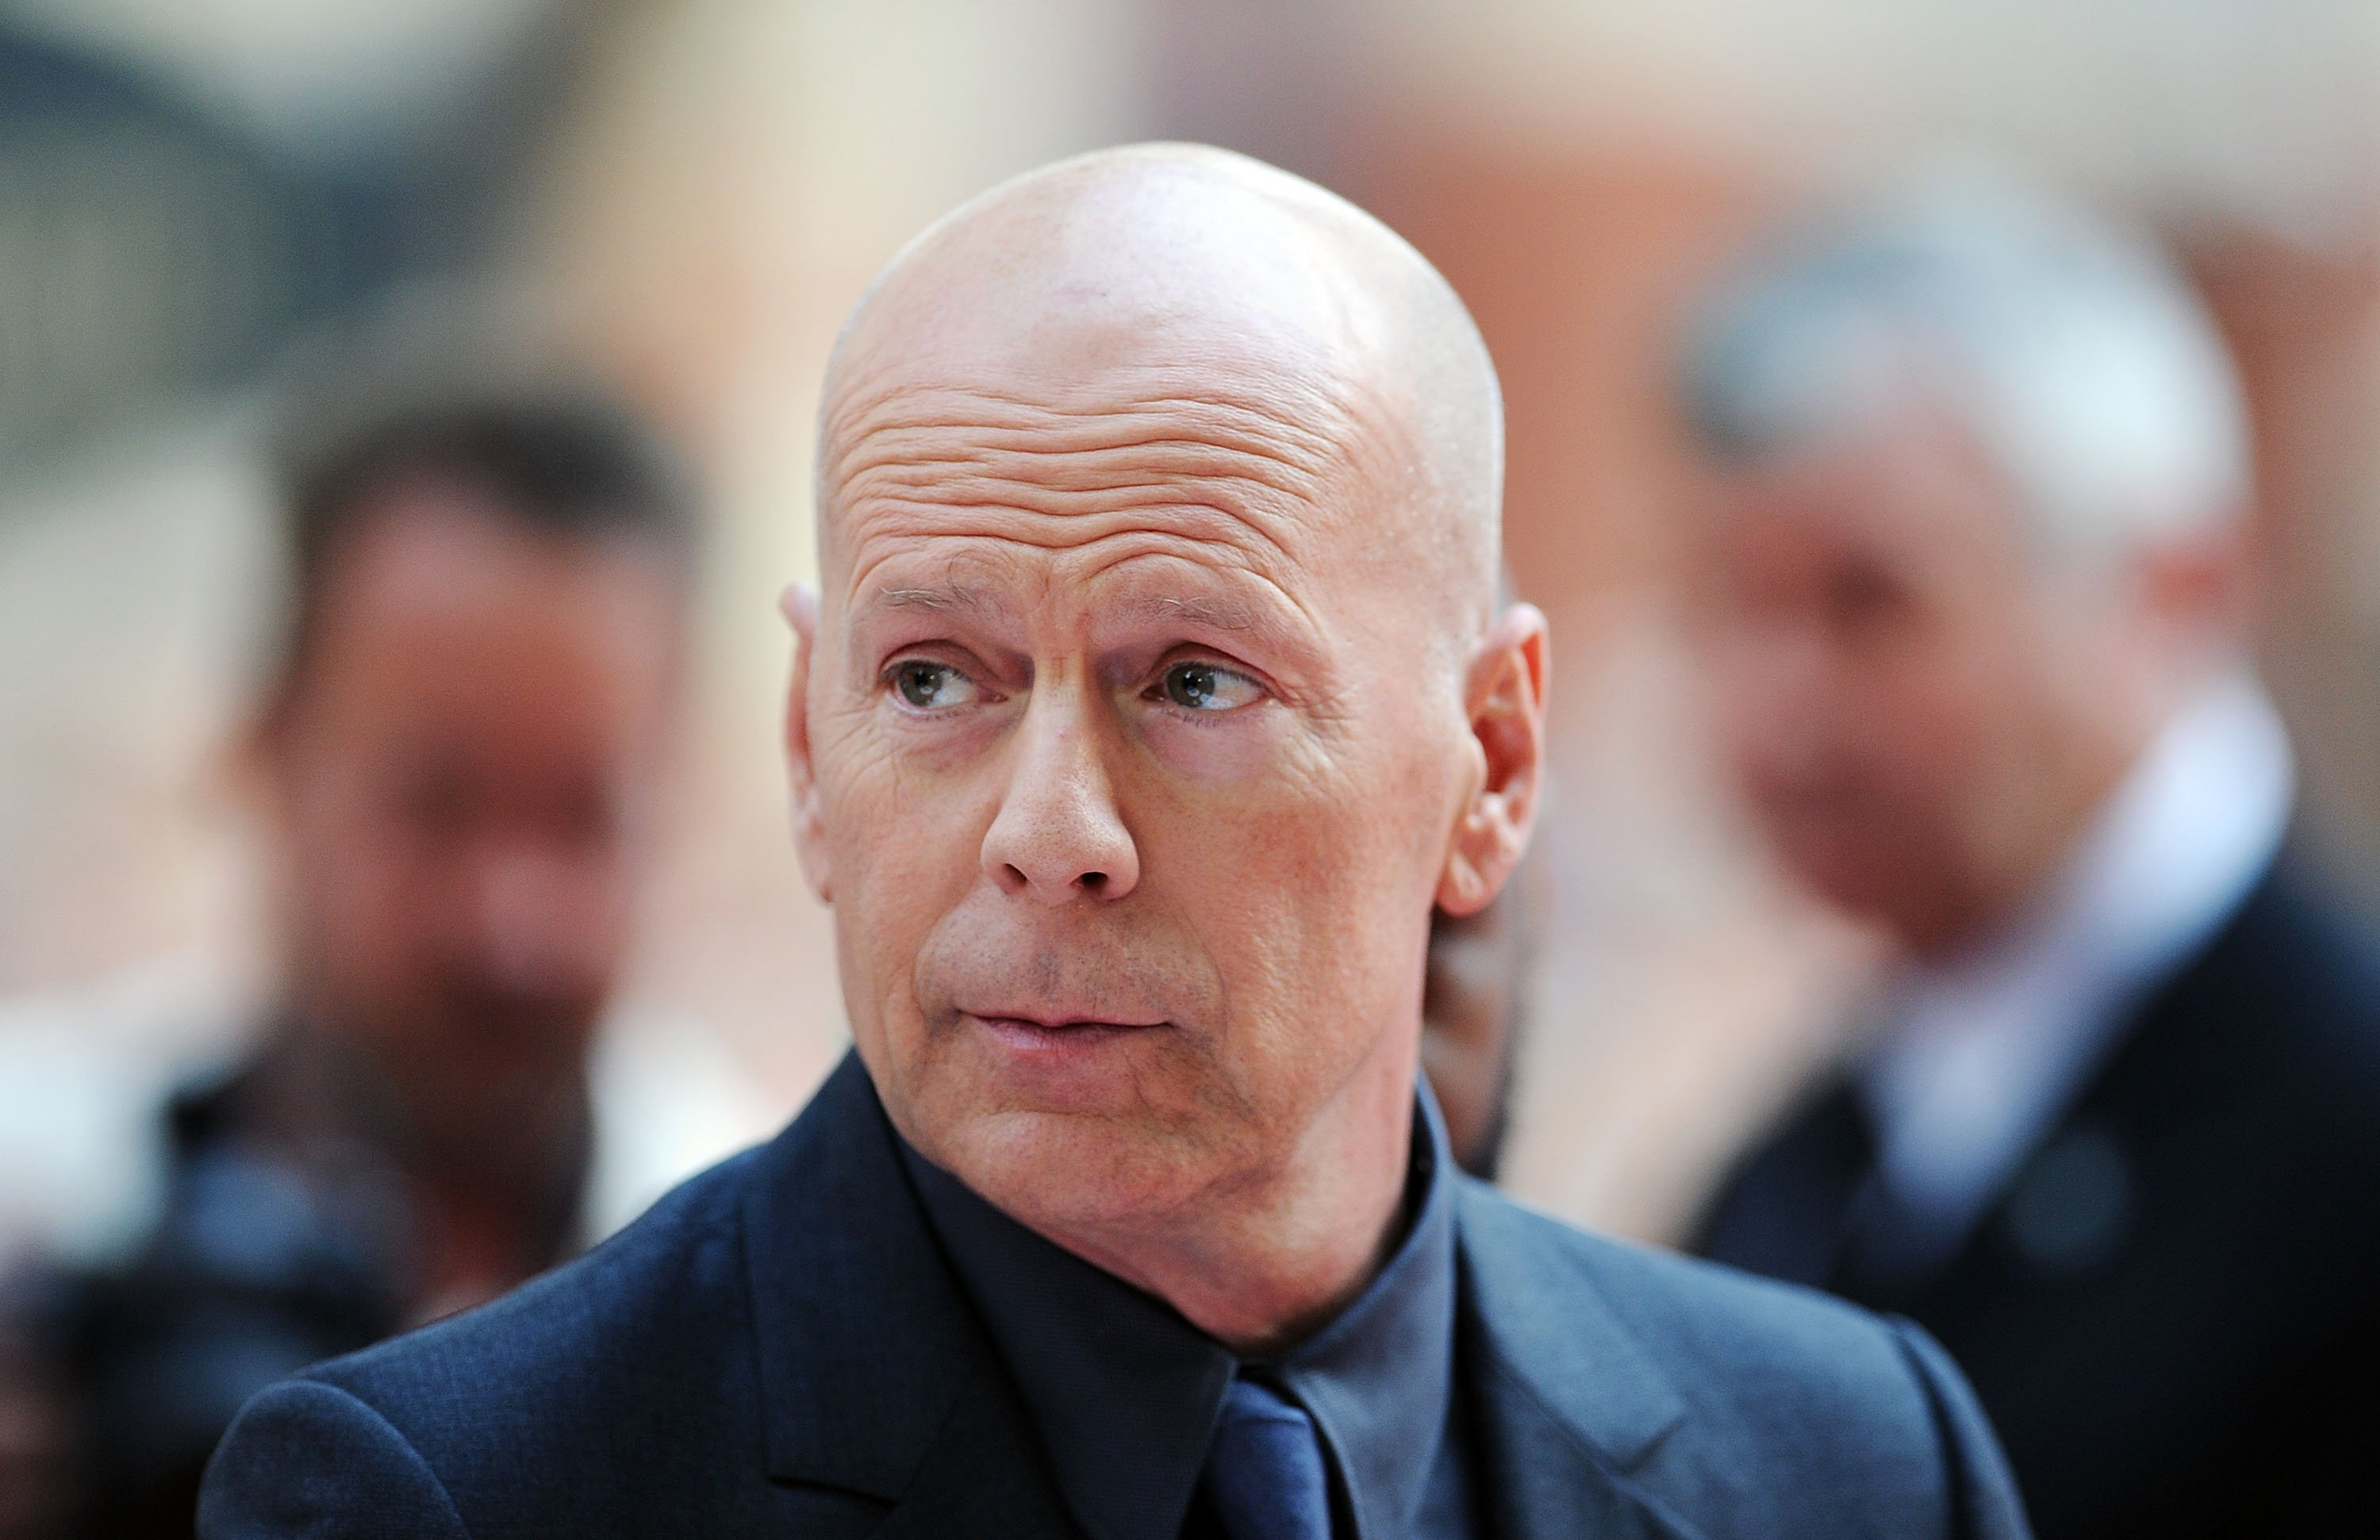 Bruce Willis attends the European Premiere of 'Red 2' on July 22, 2013, in London, England. | Source: Getty Images.